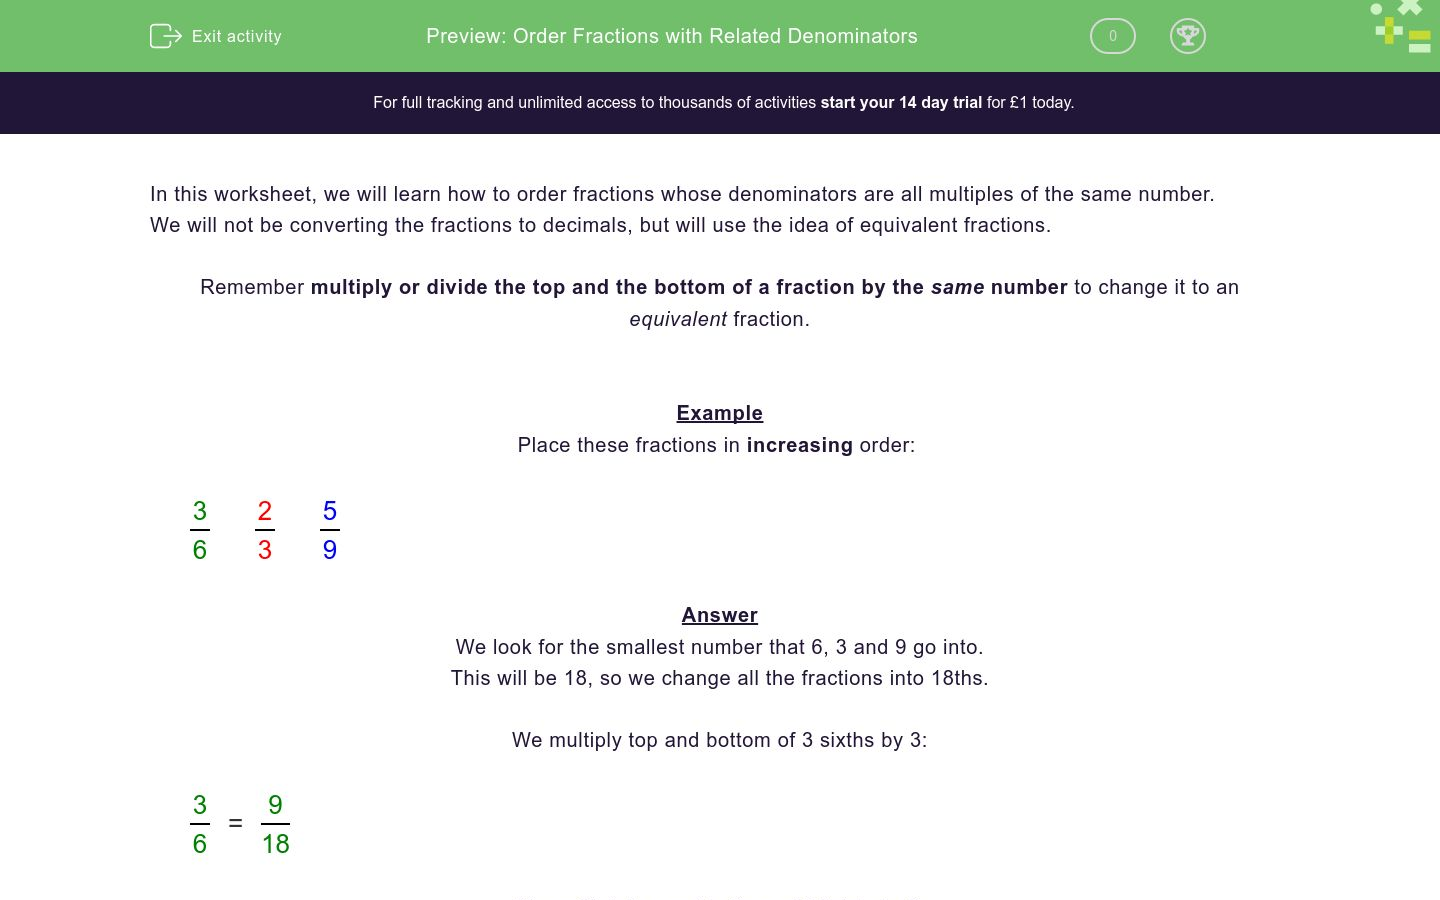 'Order Fractions with Related Denominators' worksheet